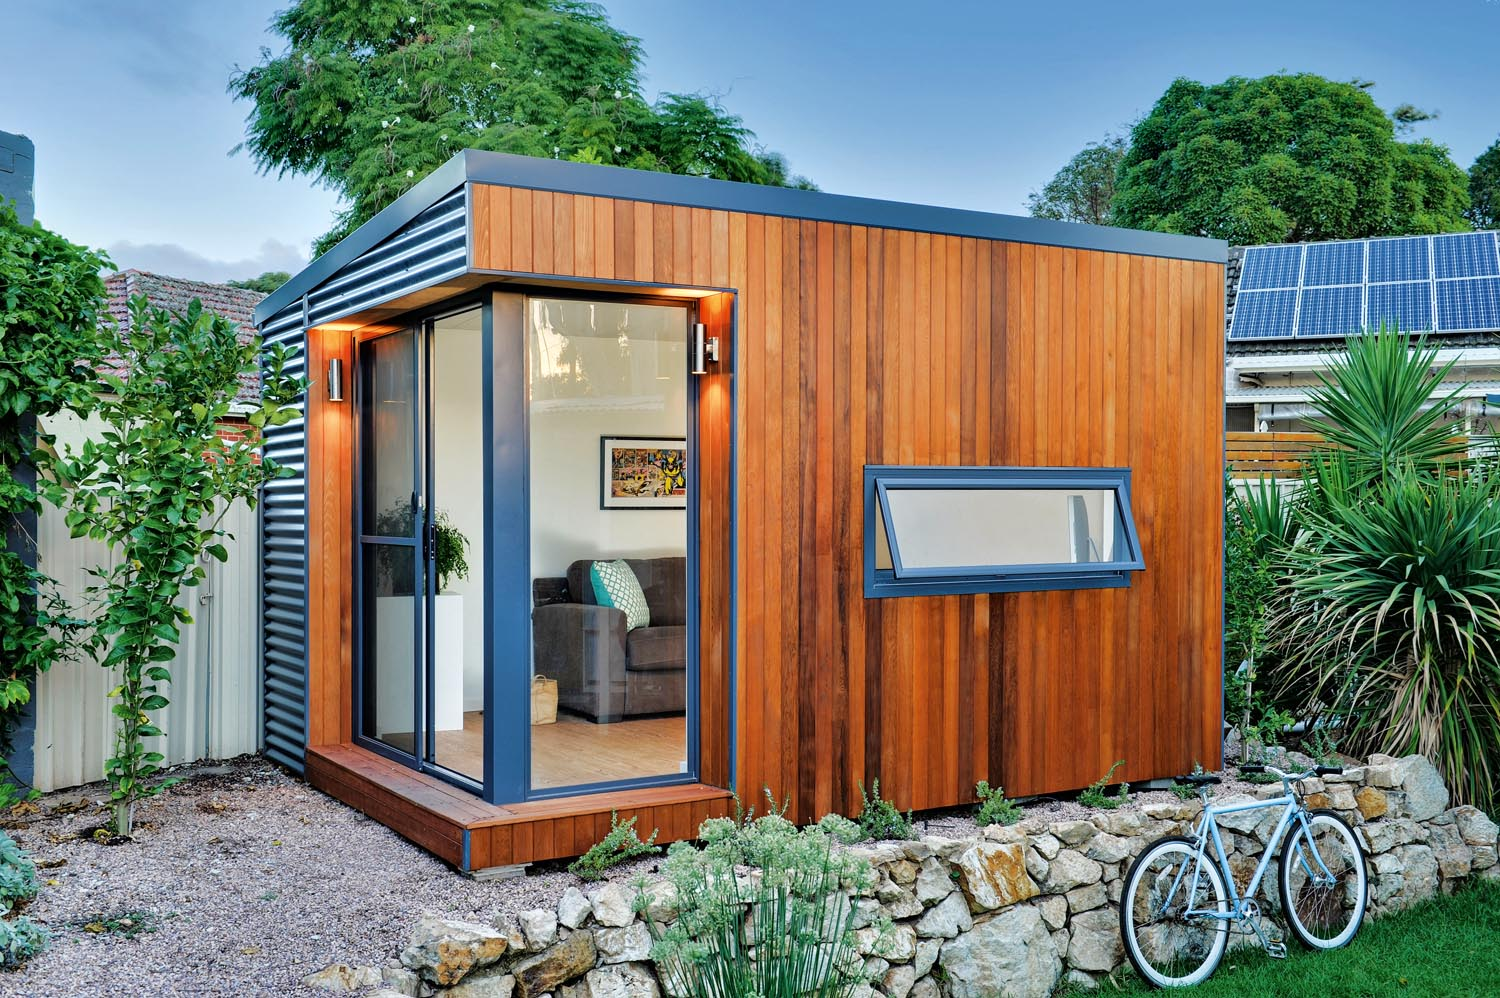 Office, studio or living room? Look to your garden - InOutside garden room